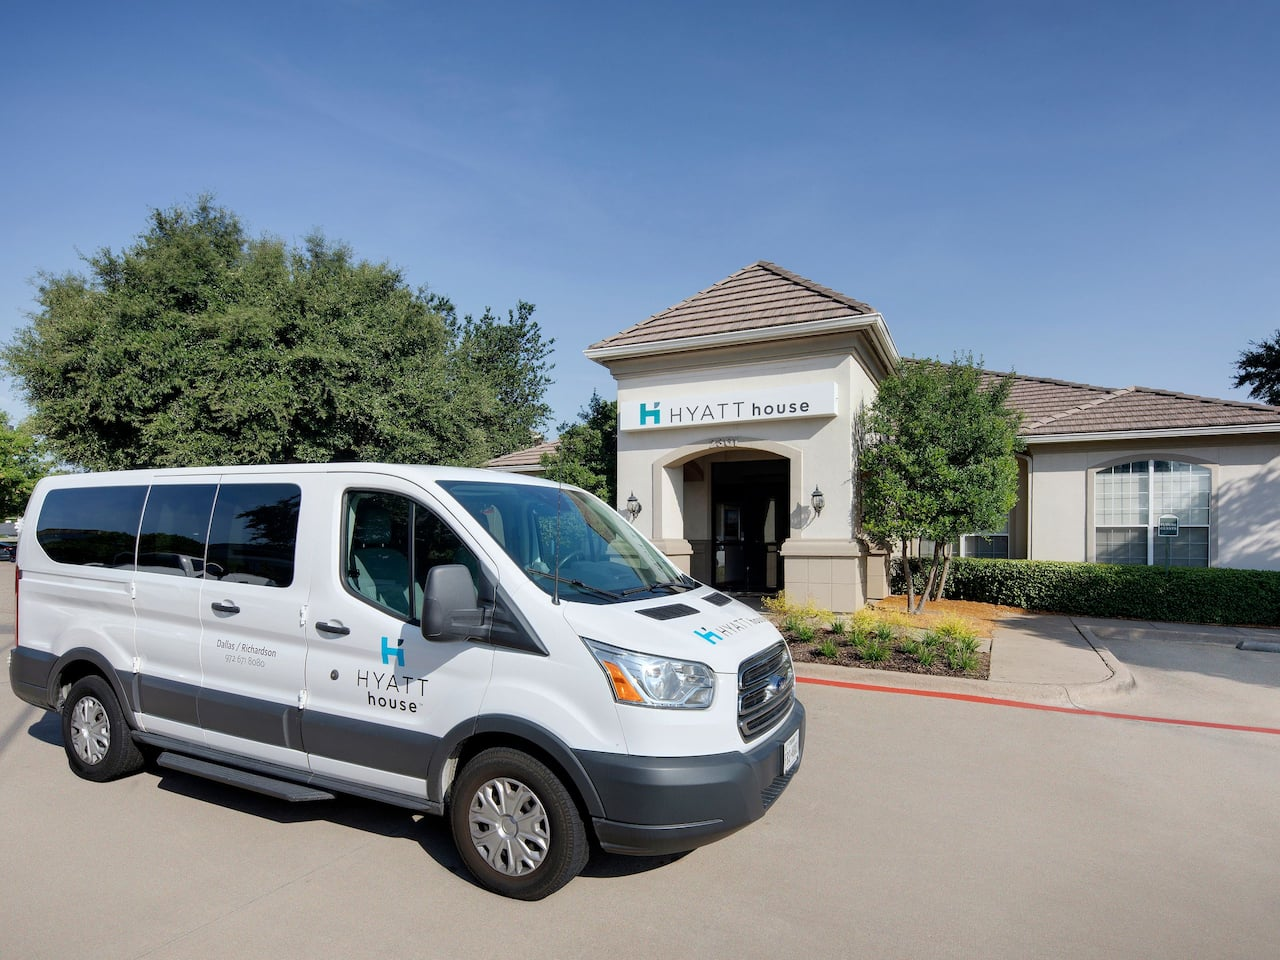 Hyatt House Dallas Richardson Shuttle